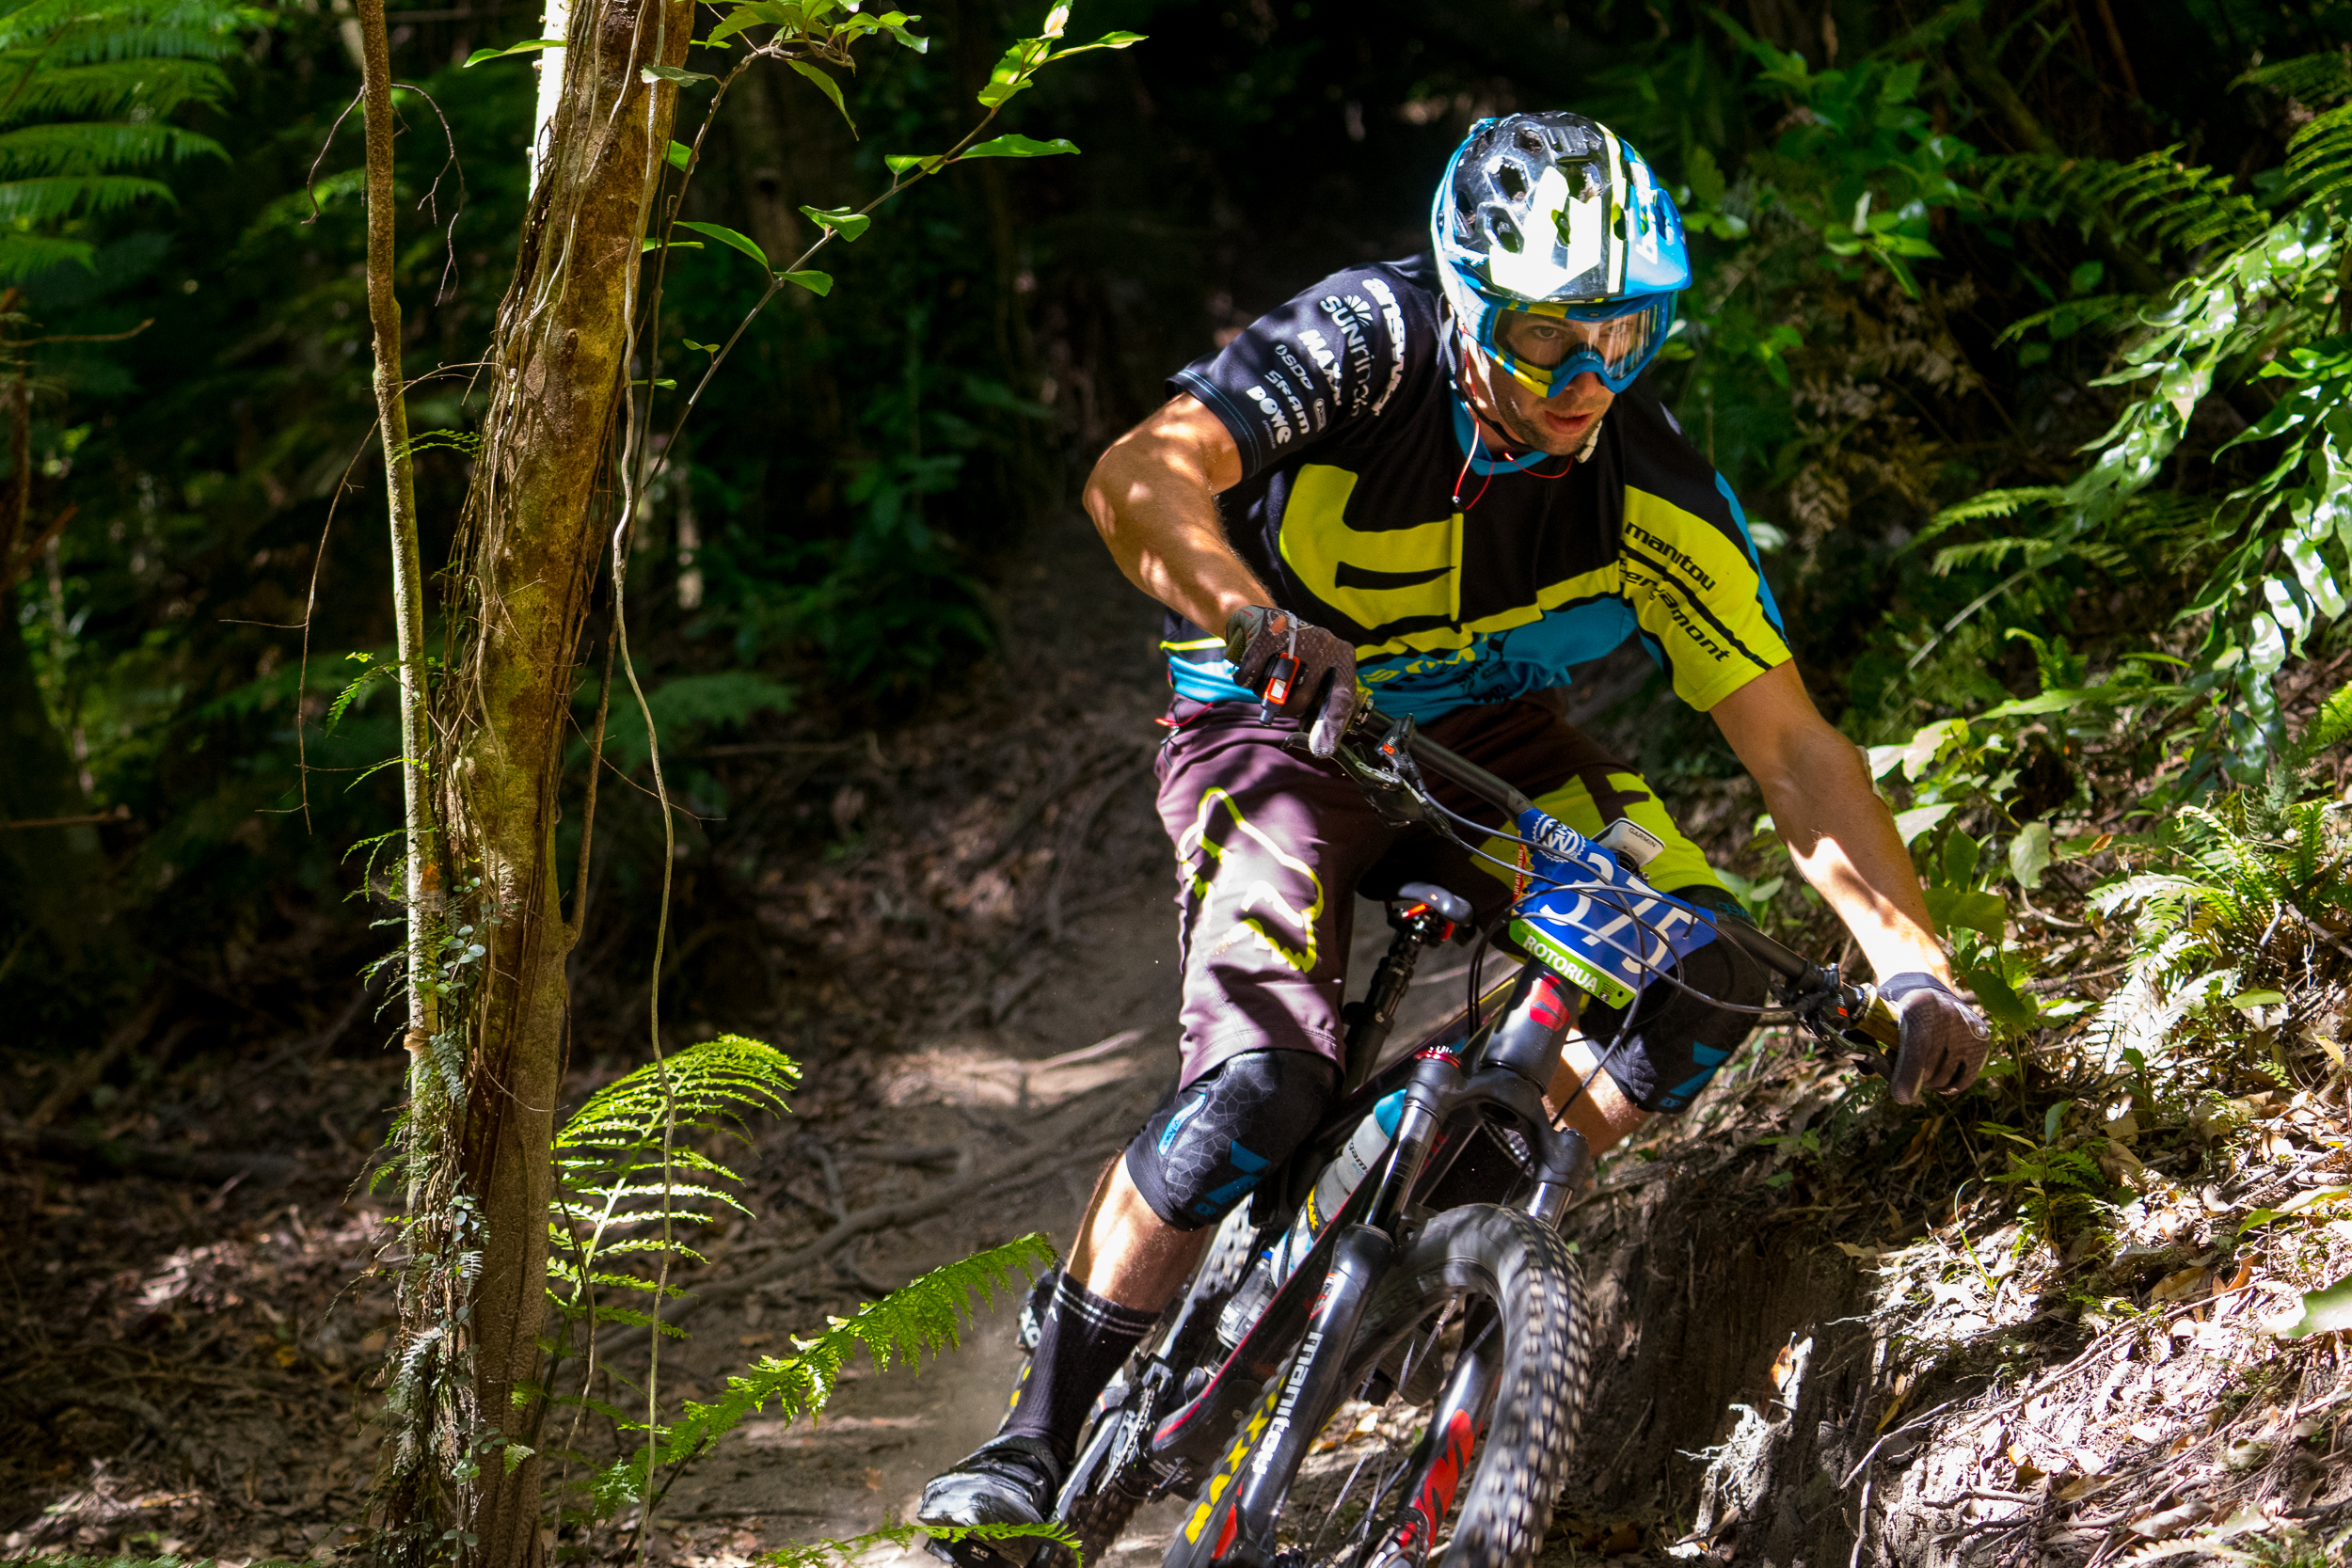 Joe Nation settled for third place today, just 13 seconds behind the leader over six stages